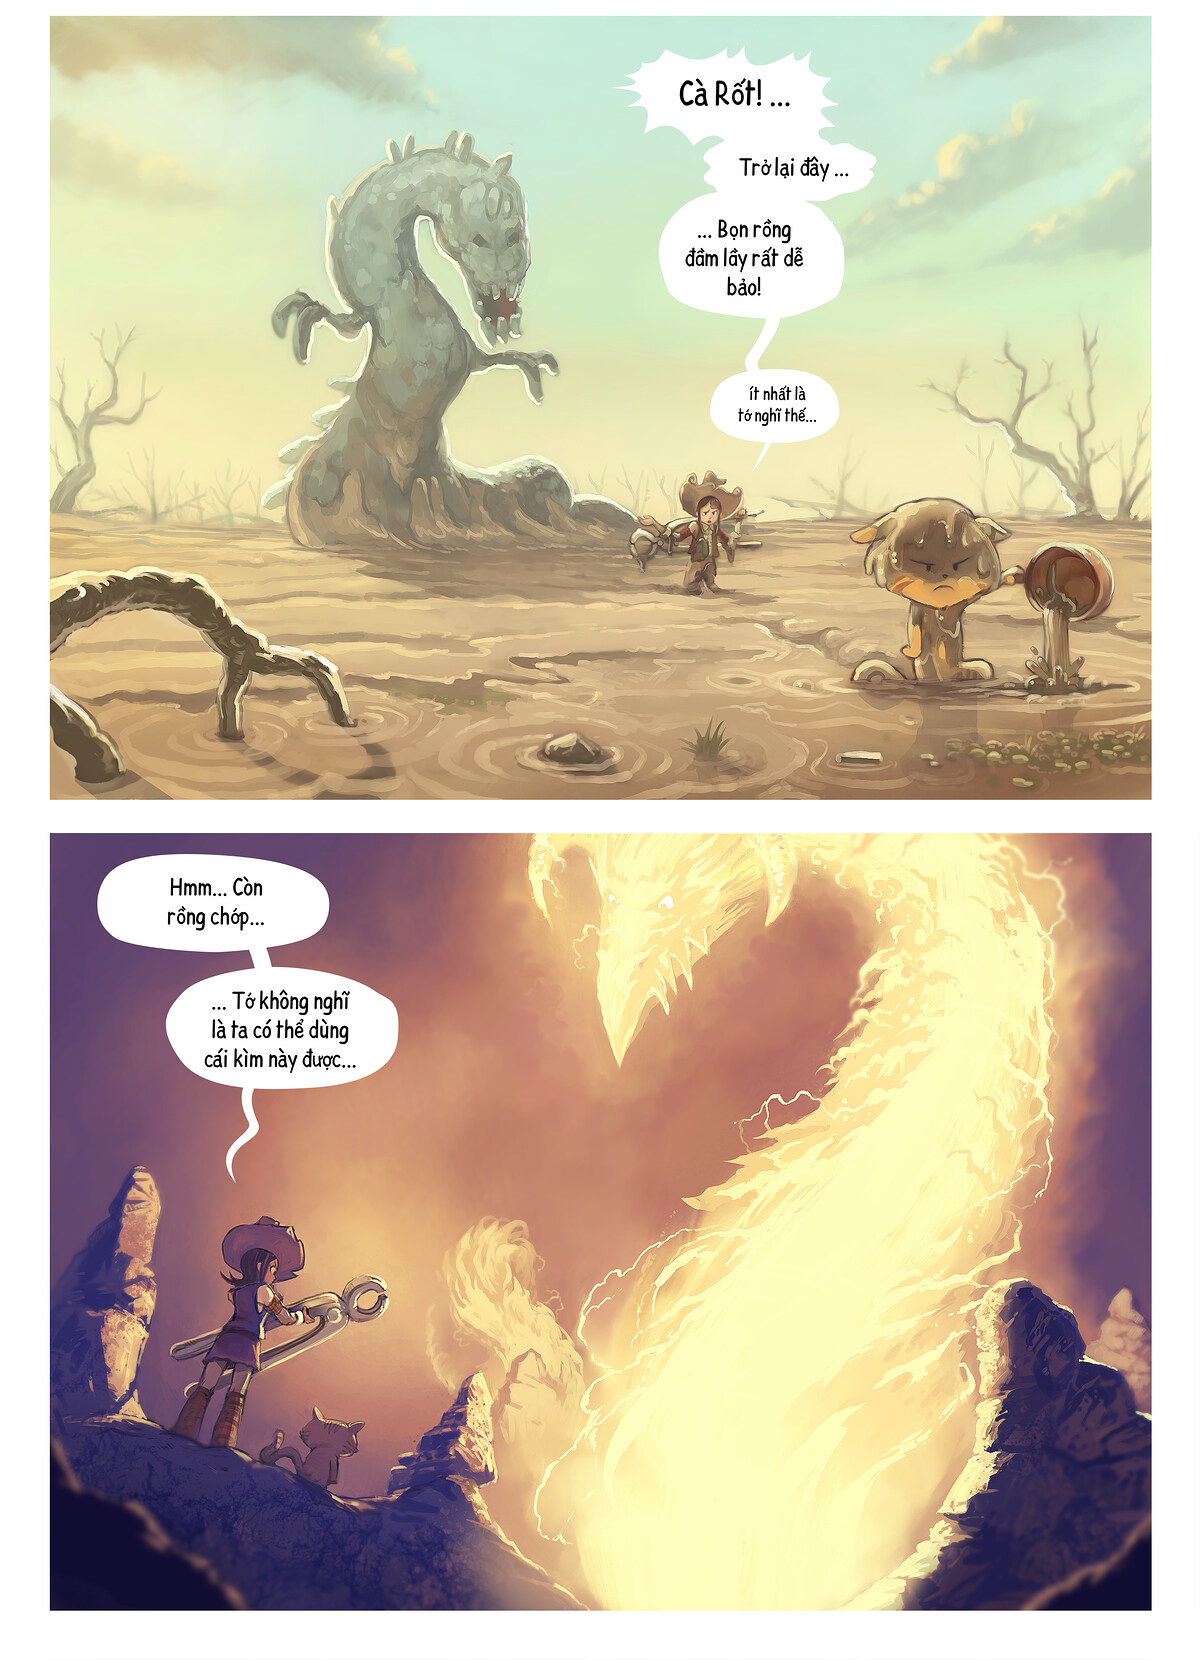 A webcomic page of Pepper&Carrot, Tập 14 [vi], trang 4